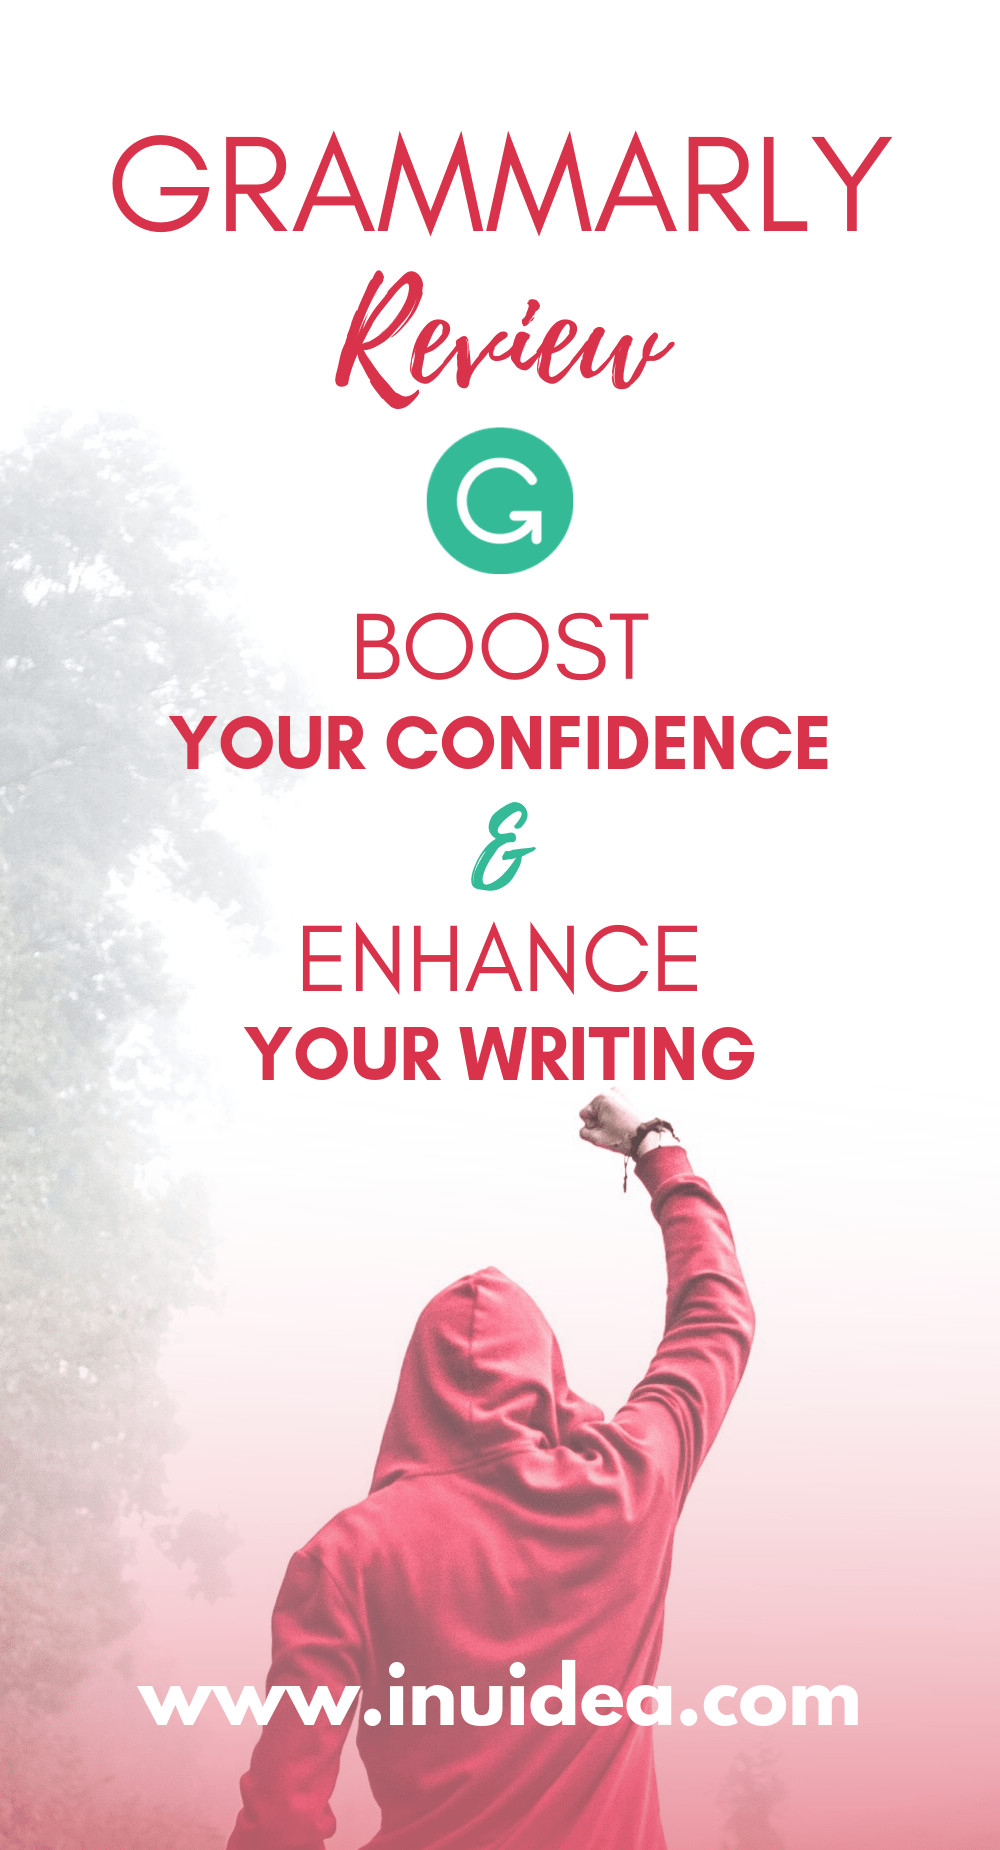 Buy Grammarly Proofreading Software Price Cheap